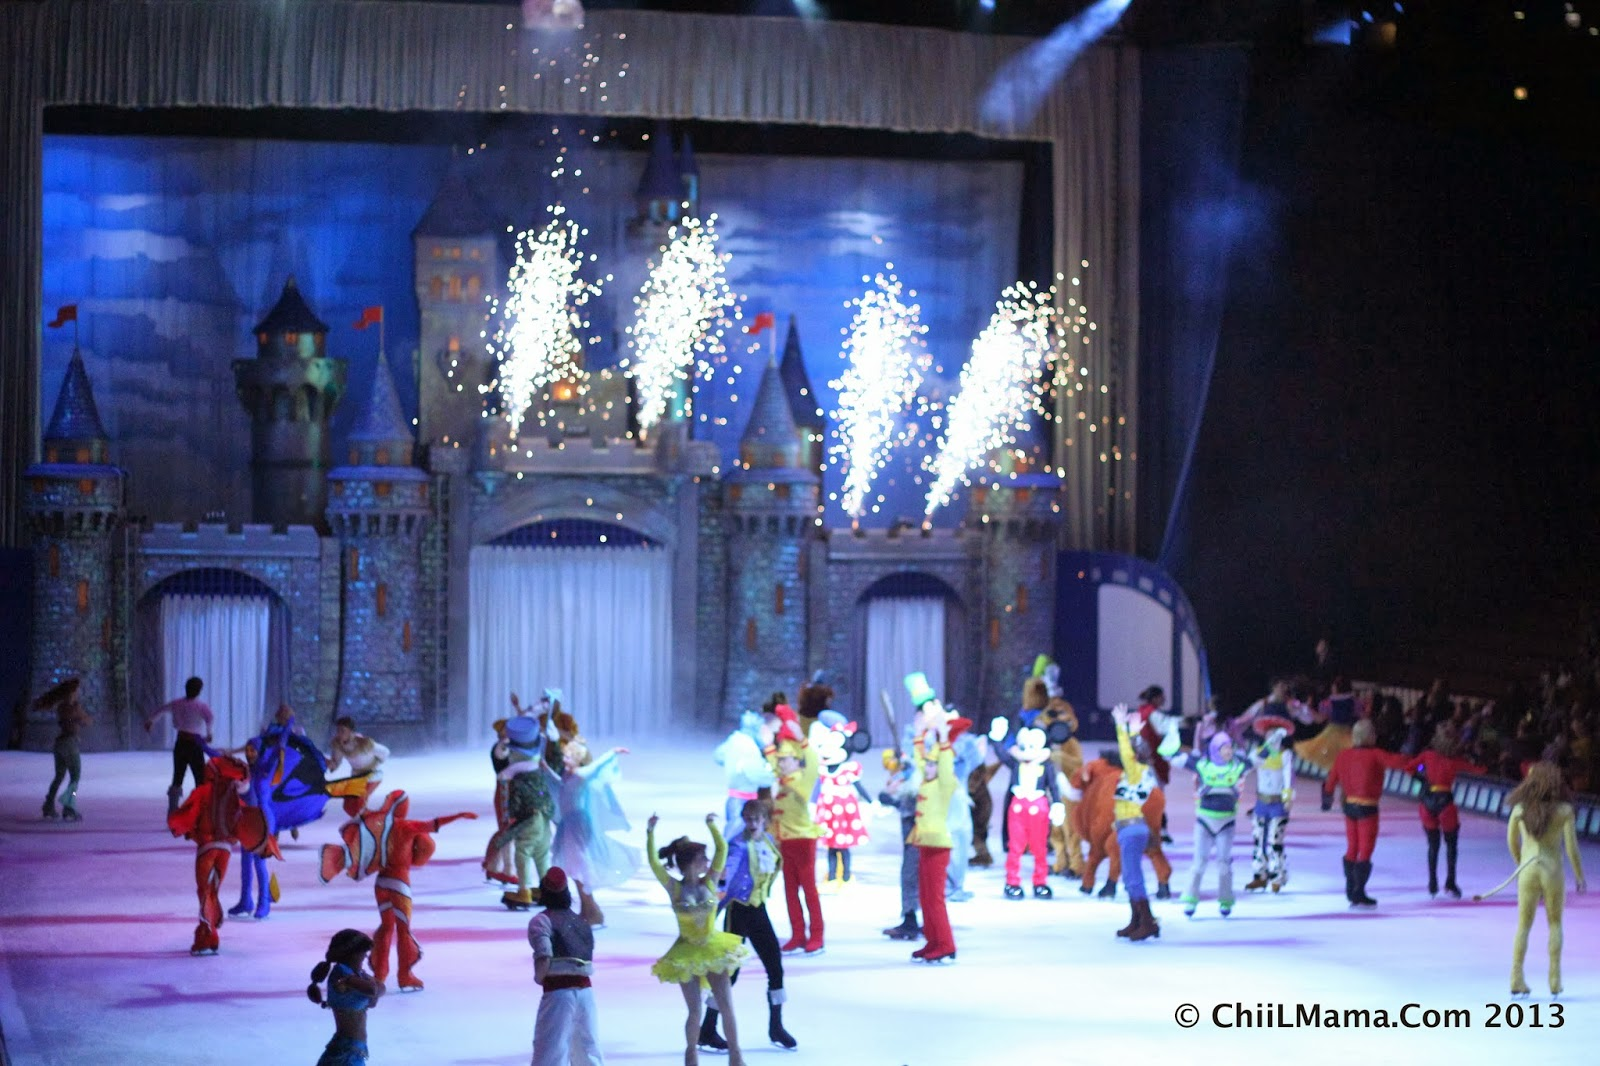 Chiil mama review photo recap disney on ice 100 years of magic as always well have free ticket giveaways discount codes and photo filled recaps book now for the best seat choices and chiil out with chiil mama fandeluxe Images